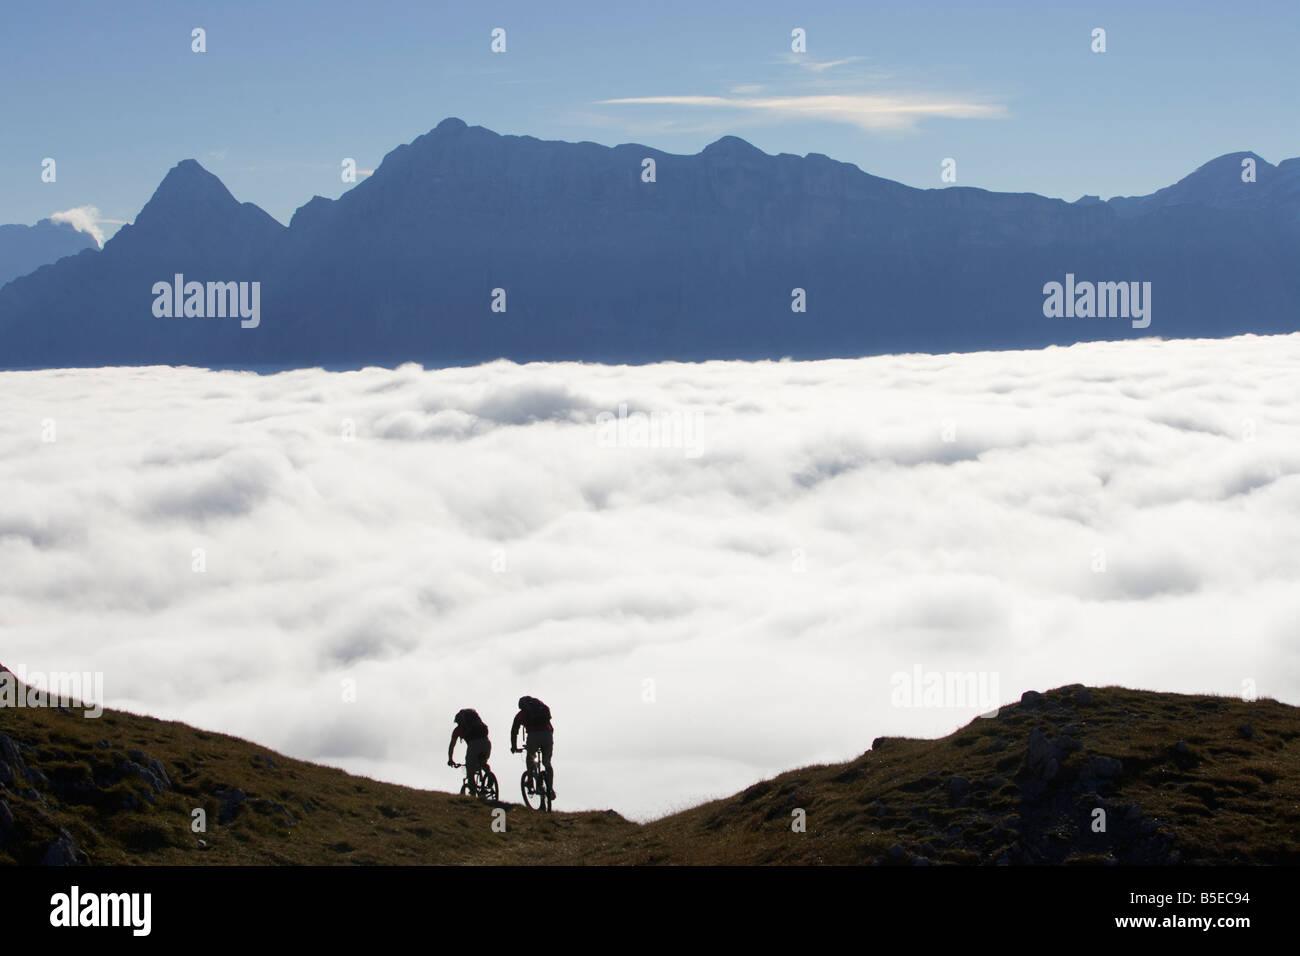 Two mountainbikers in front of a cloud cover - Stock Image